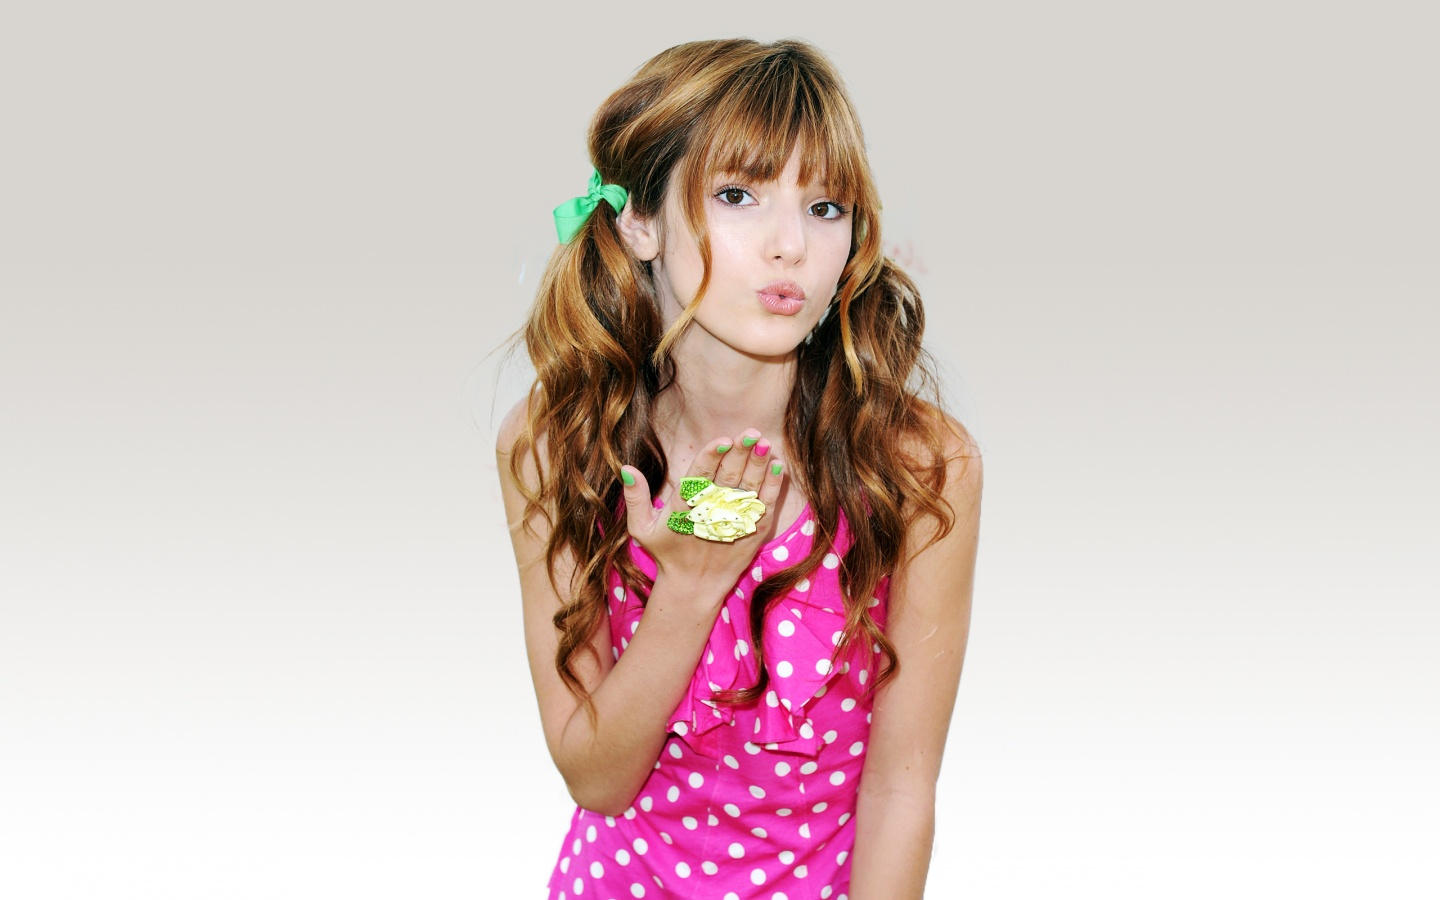 1440x900 - Bella Thorne Wallpapers 11